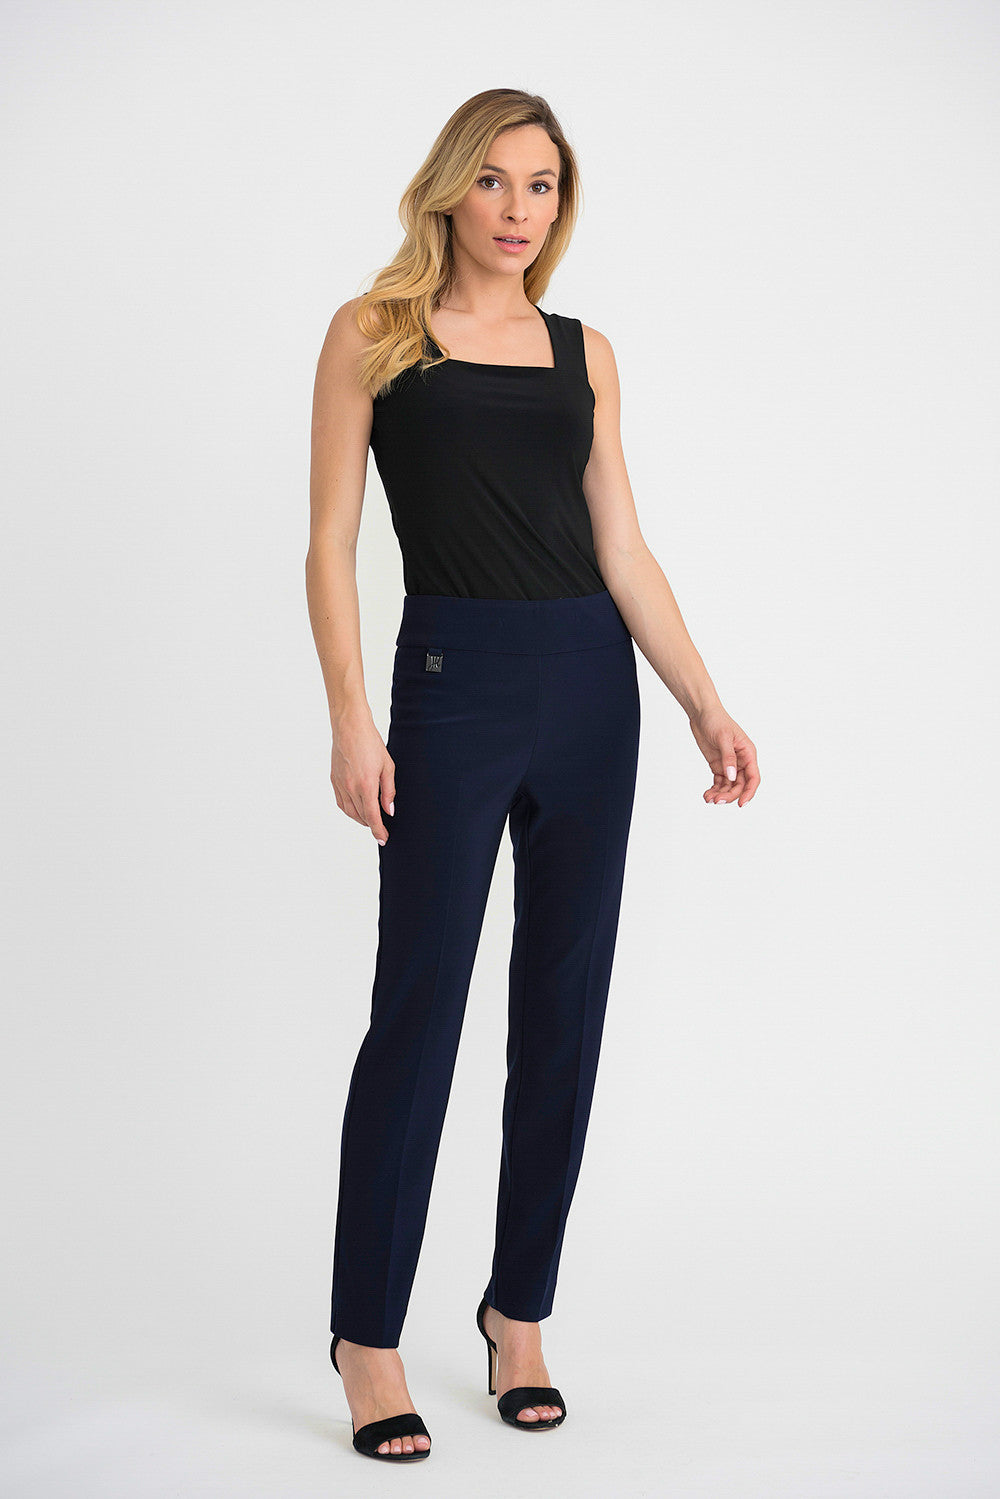 Joseph Ribkoff Contour Slim Fit Pant - Midnight Blue | Buy Online at Weekends